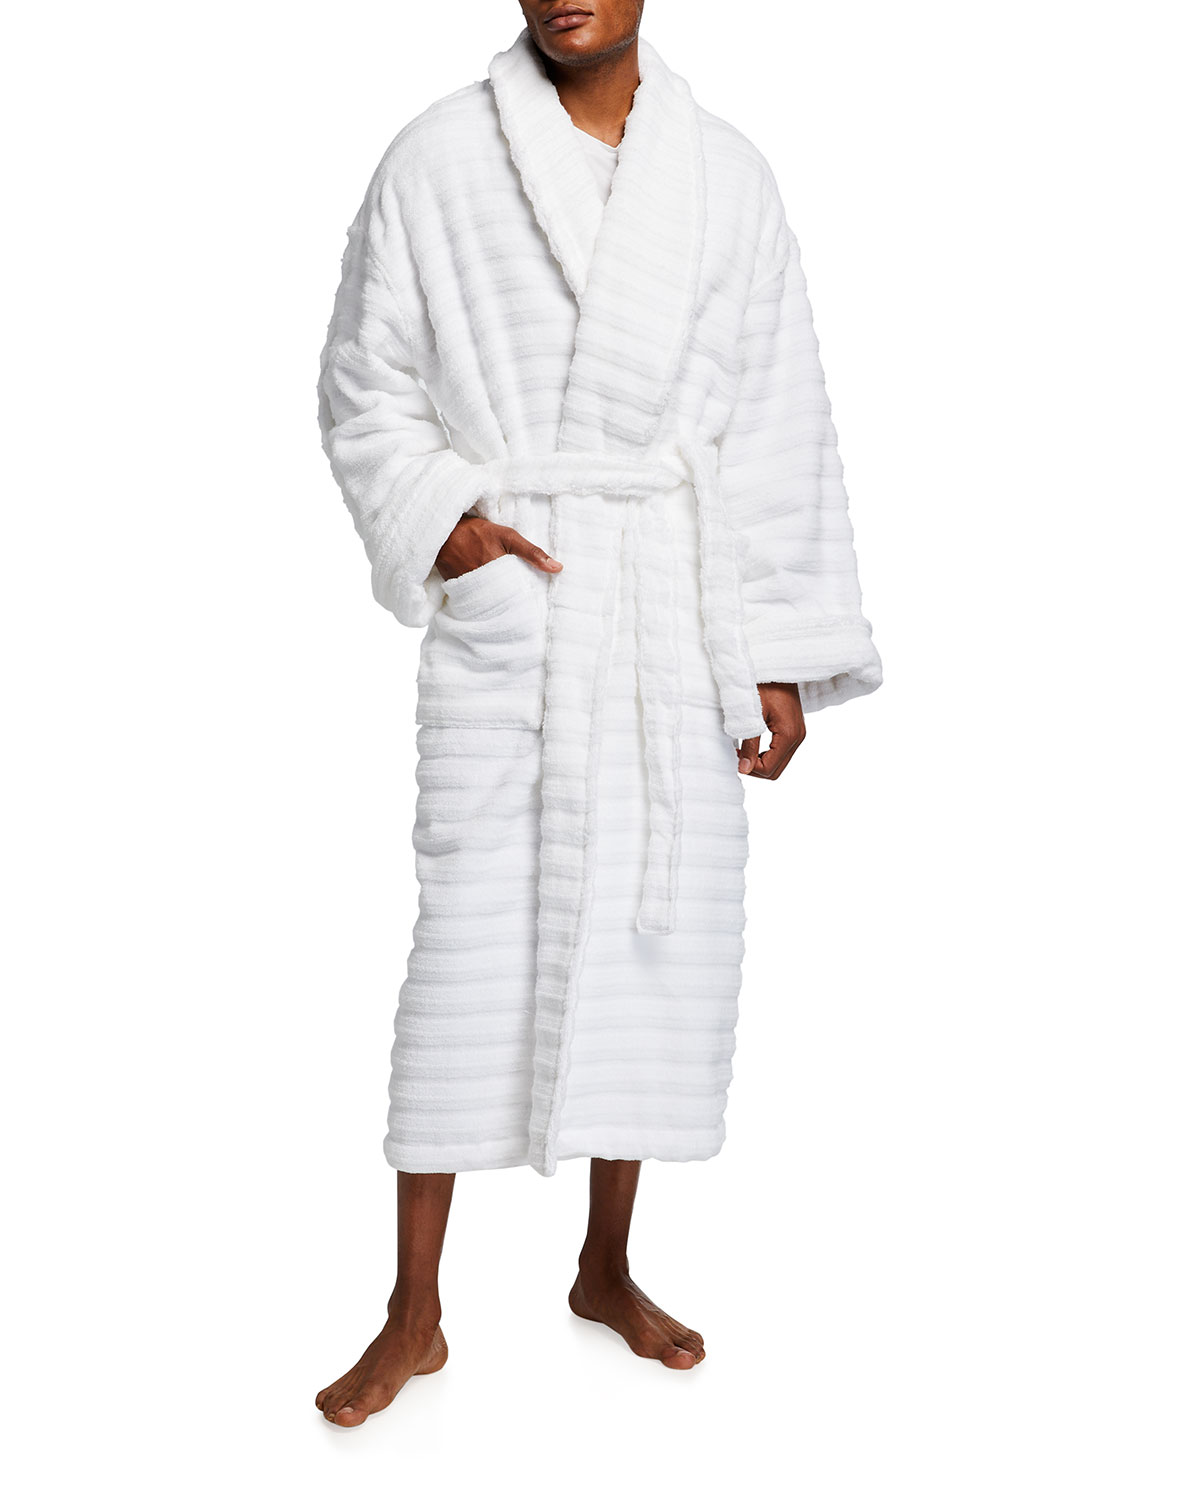 Men's Mount Royal One Size Thick Terry Shawl Robe